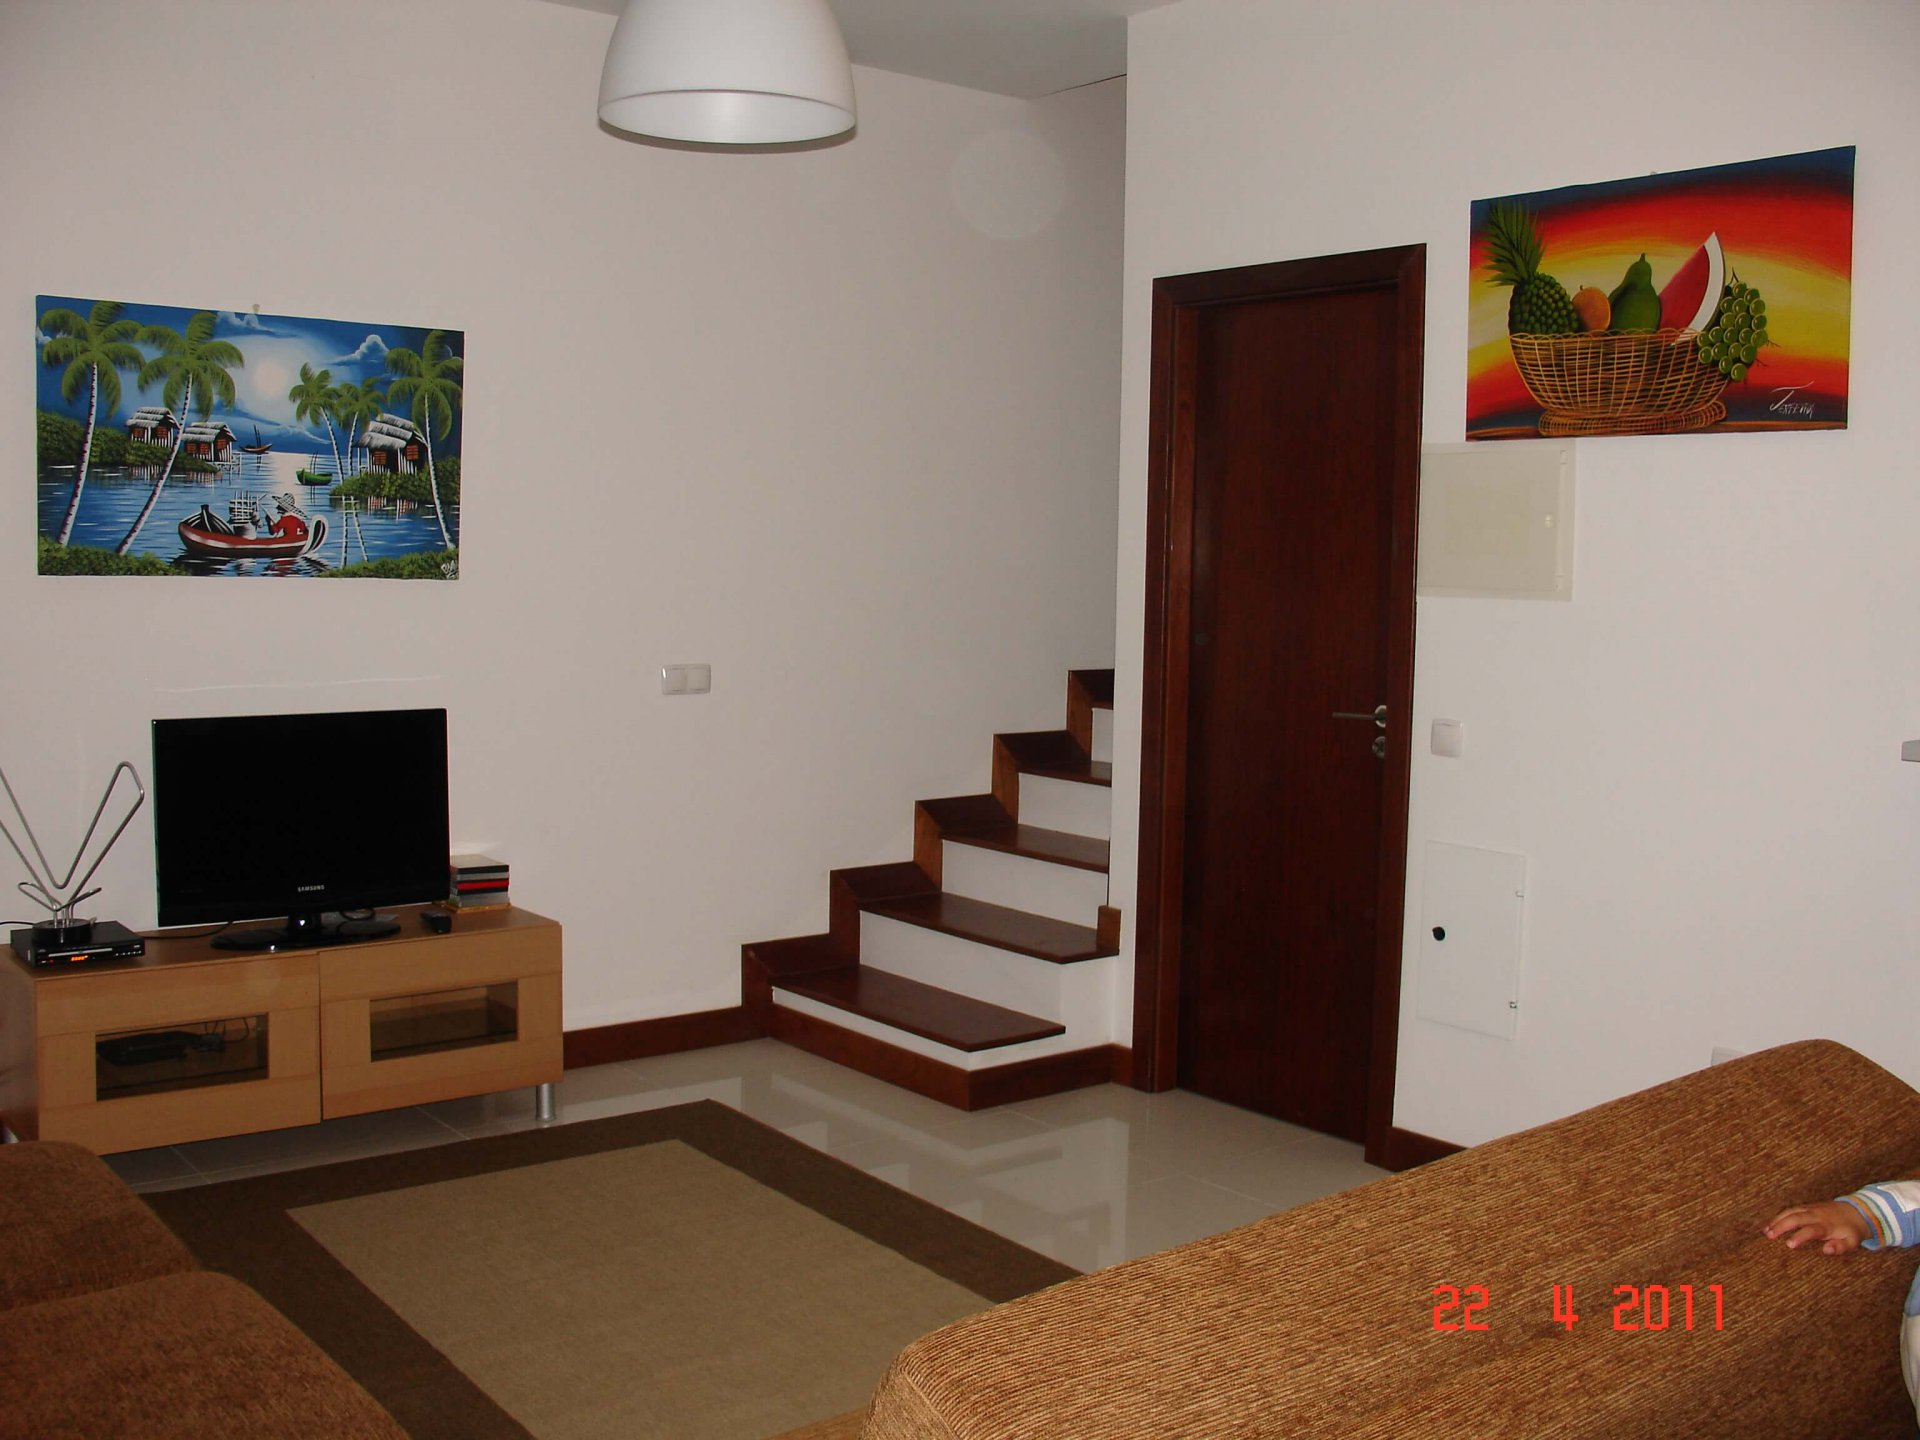 Nice T2 House of 76 m2, on 95 m2 of Flat Land, 5 Minutes to Walk to the Beach, Porto Santo